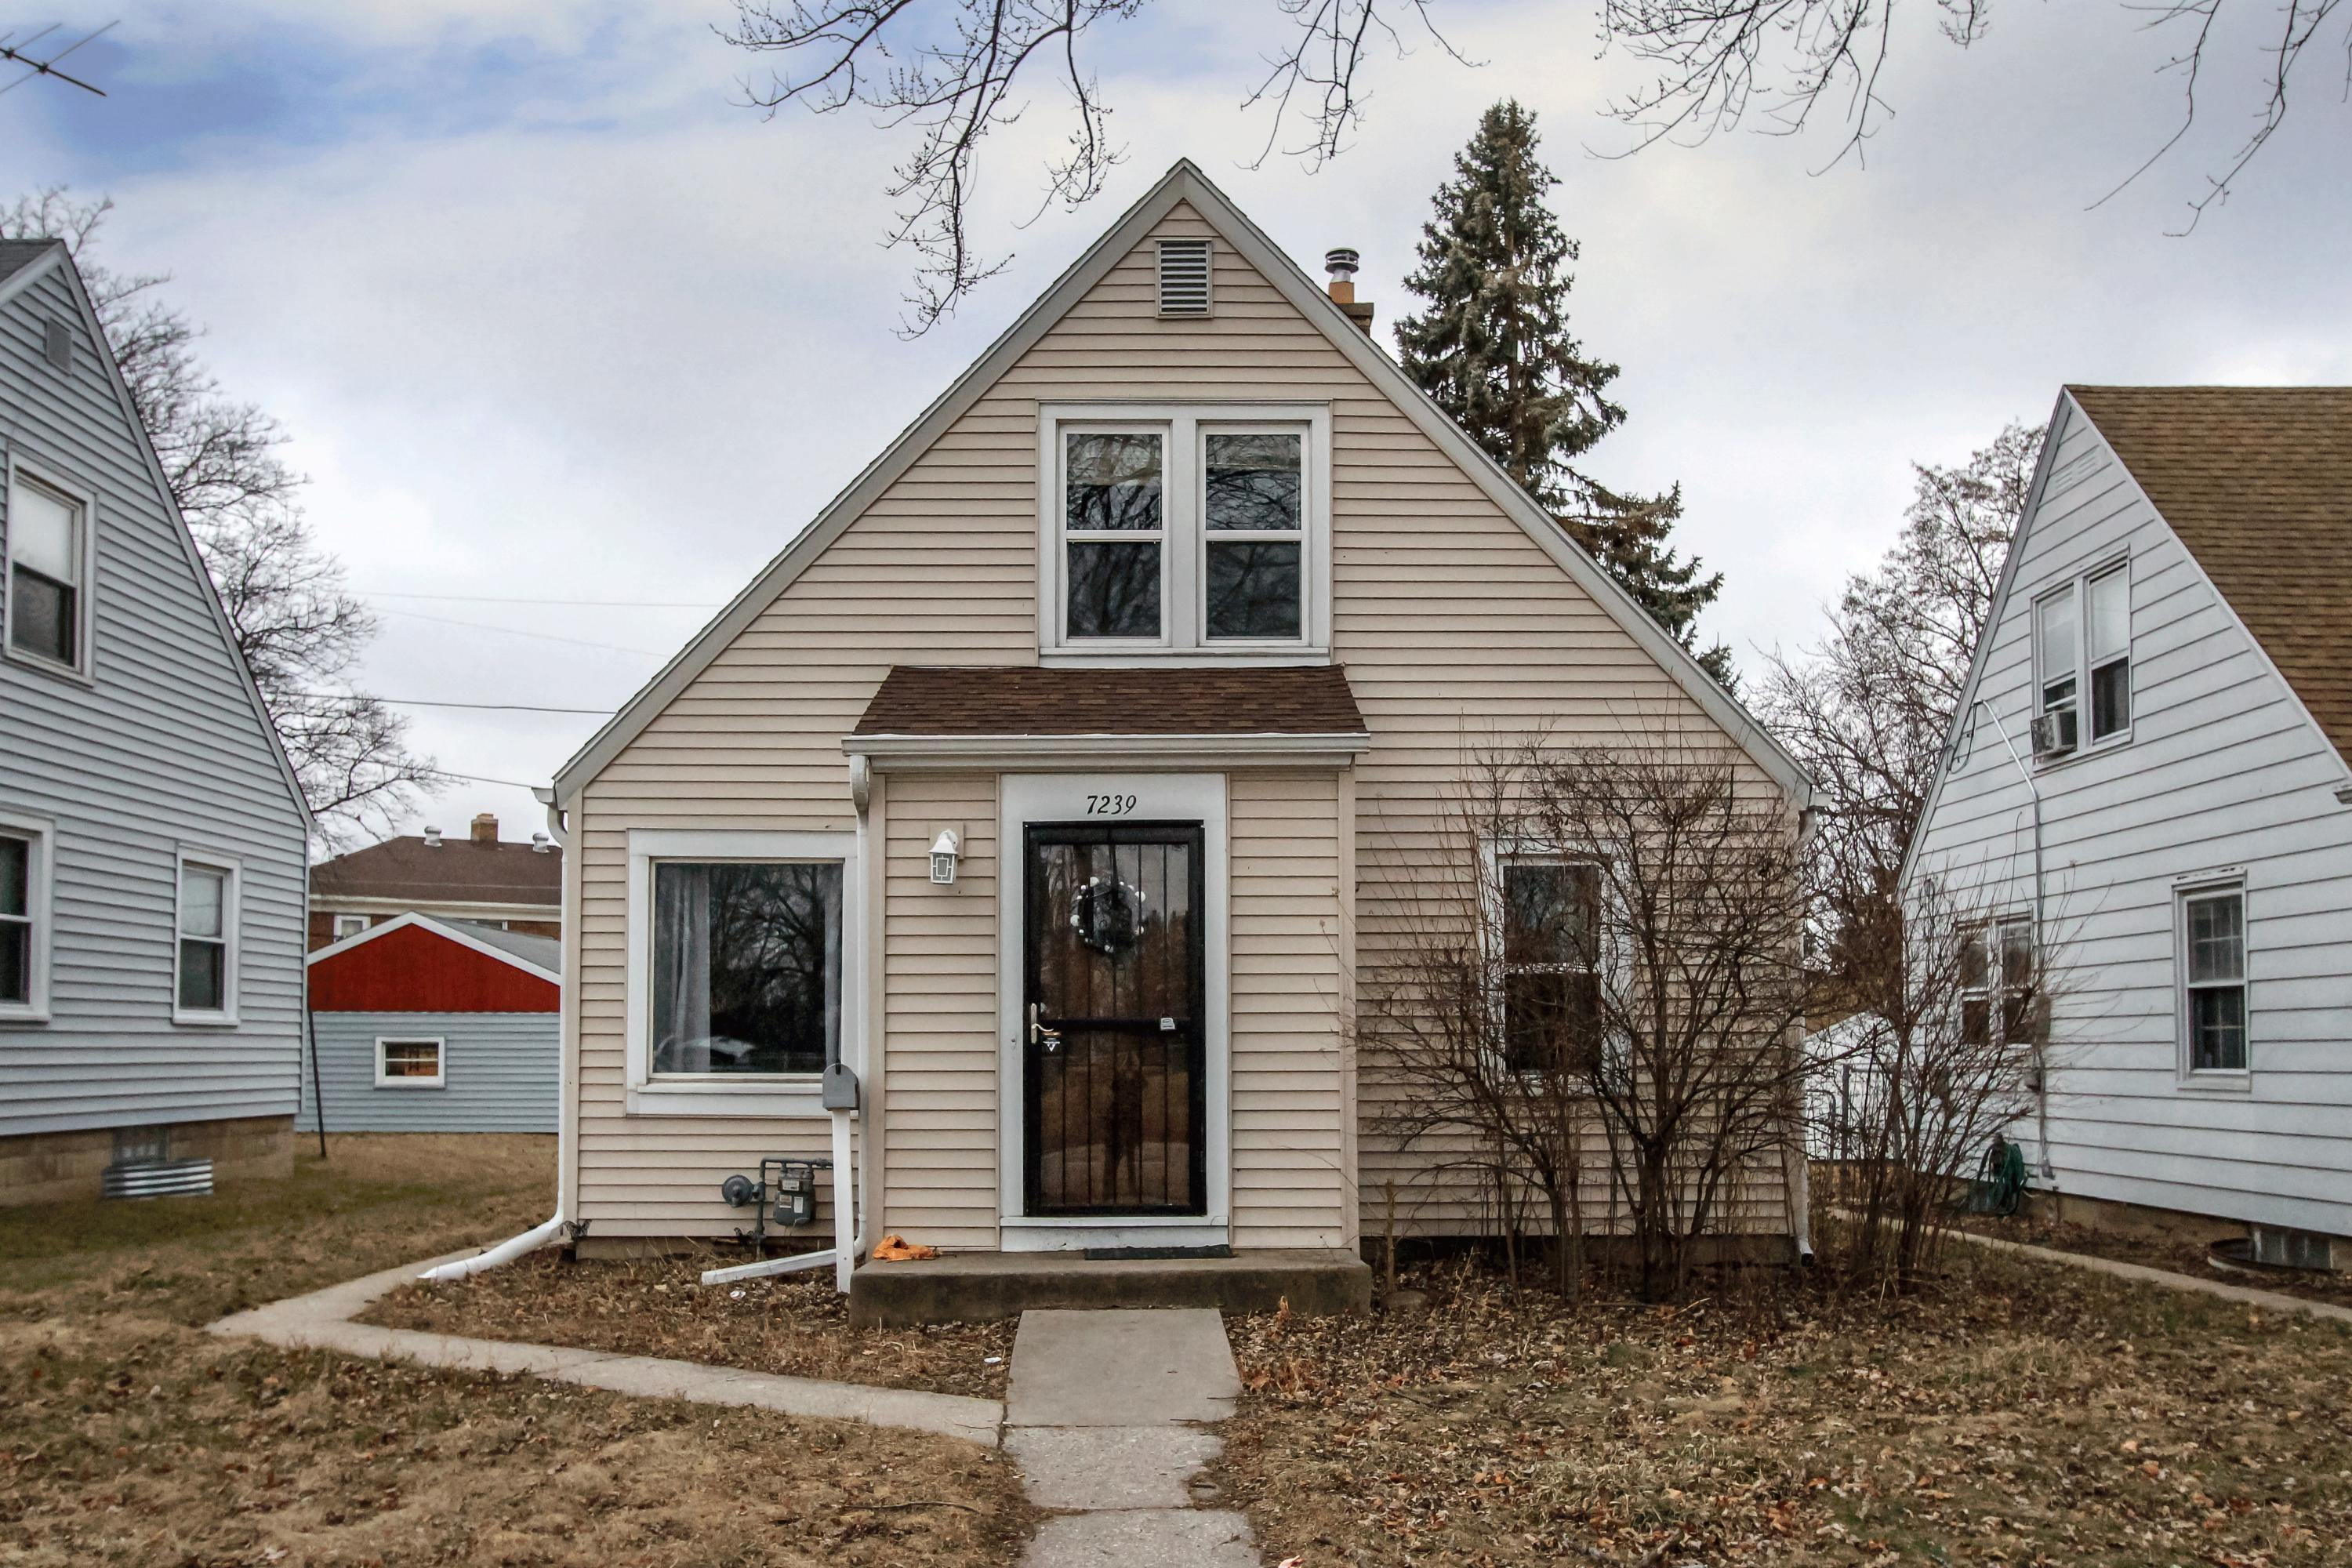 7239 Lisbon Ave, Milwaukee, Wisconsin 53216, 3 Bedrooms Bedrooms, 6 Rooms Rooms,1 BathroomBathrooms,Single-Family,For Sale,Lisbon Ave,1620362